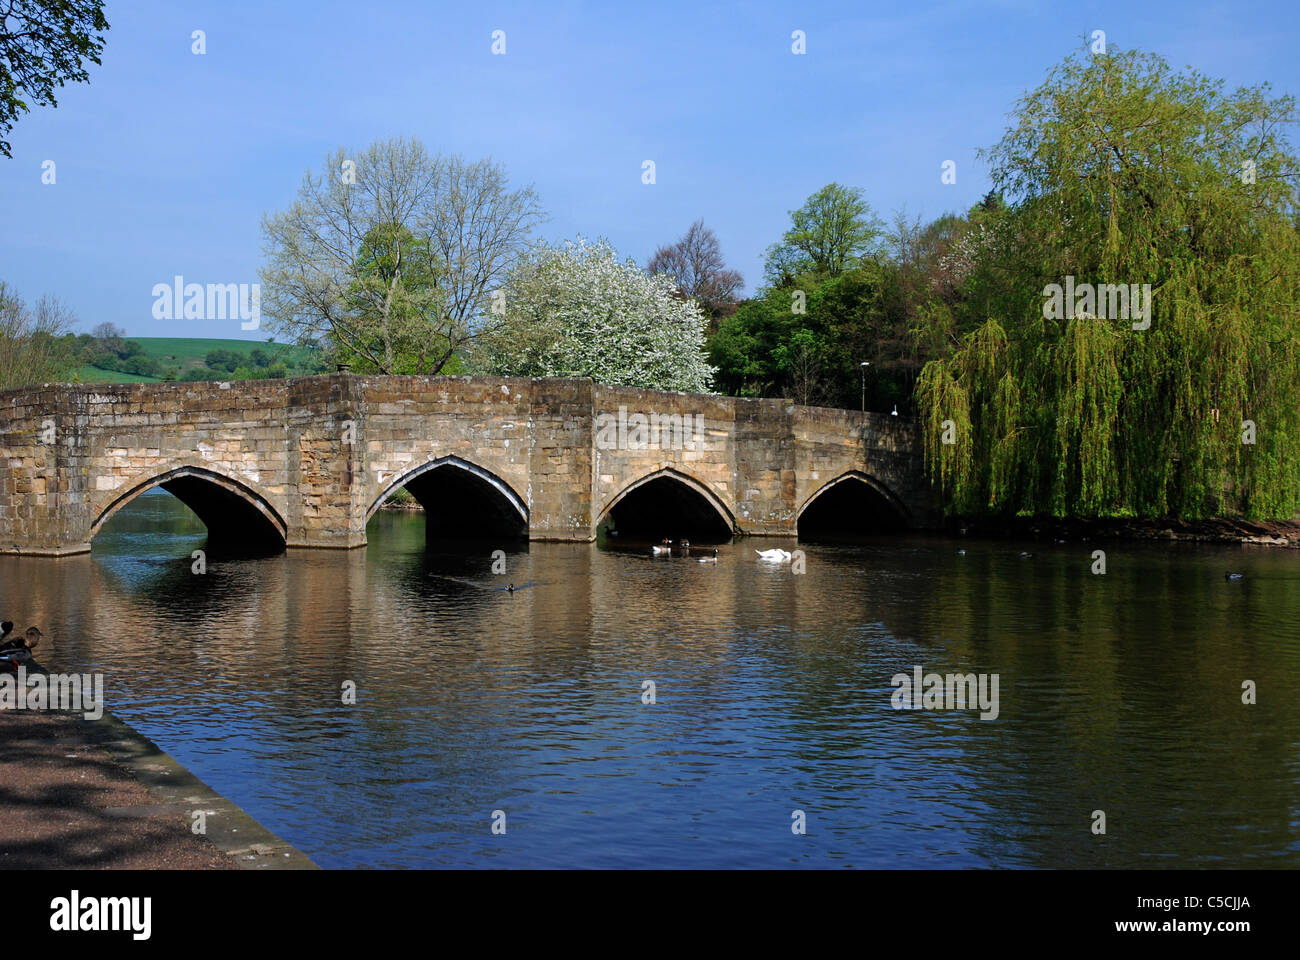 River Wye flowing through Bakewell town Derbyshire England - Stock Image